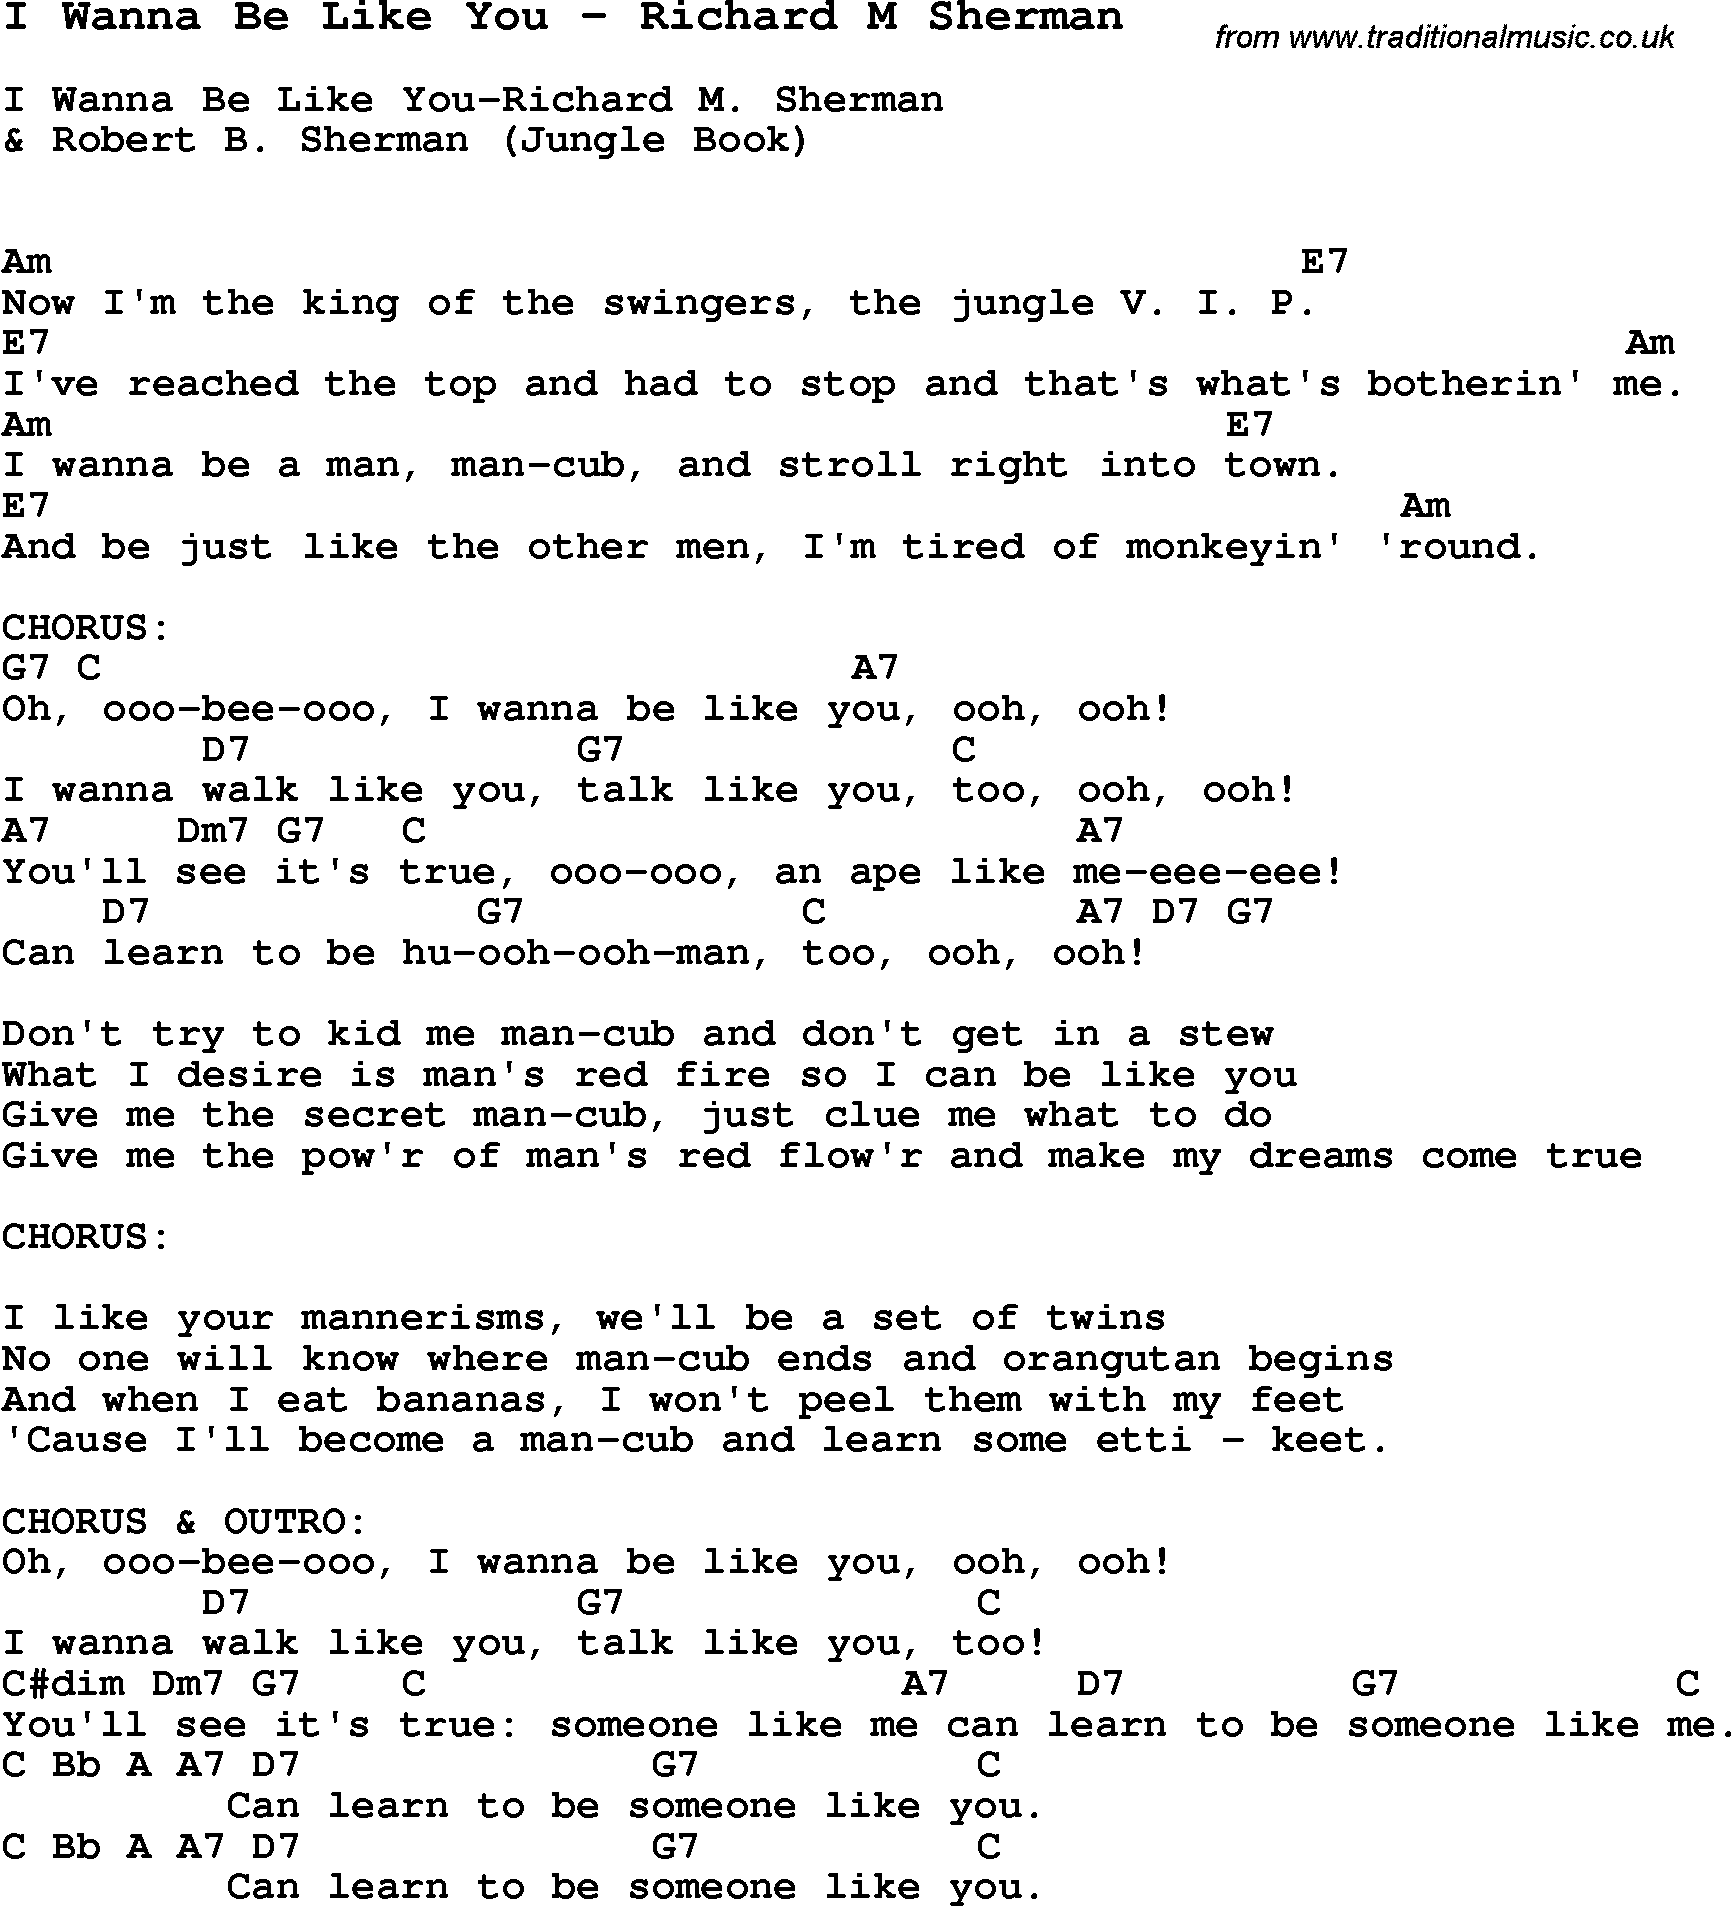 Song i wanna be like you by richard m sherman with lyrics for song i wanna be like you by richard m sherman song lyric for vocal performance plus accompaniment chords for ukulele guitar banjo etc hexwebz Images